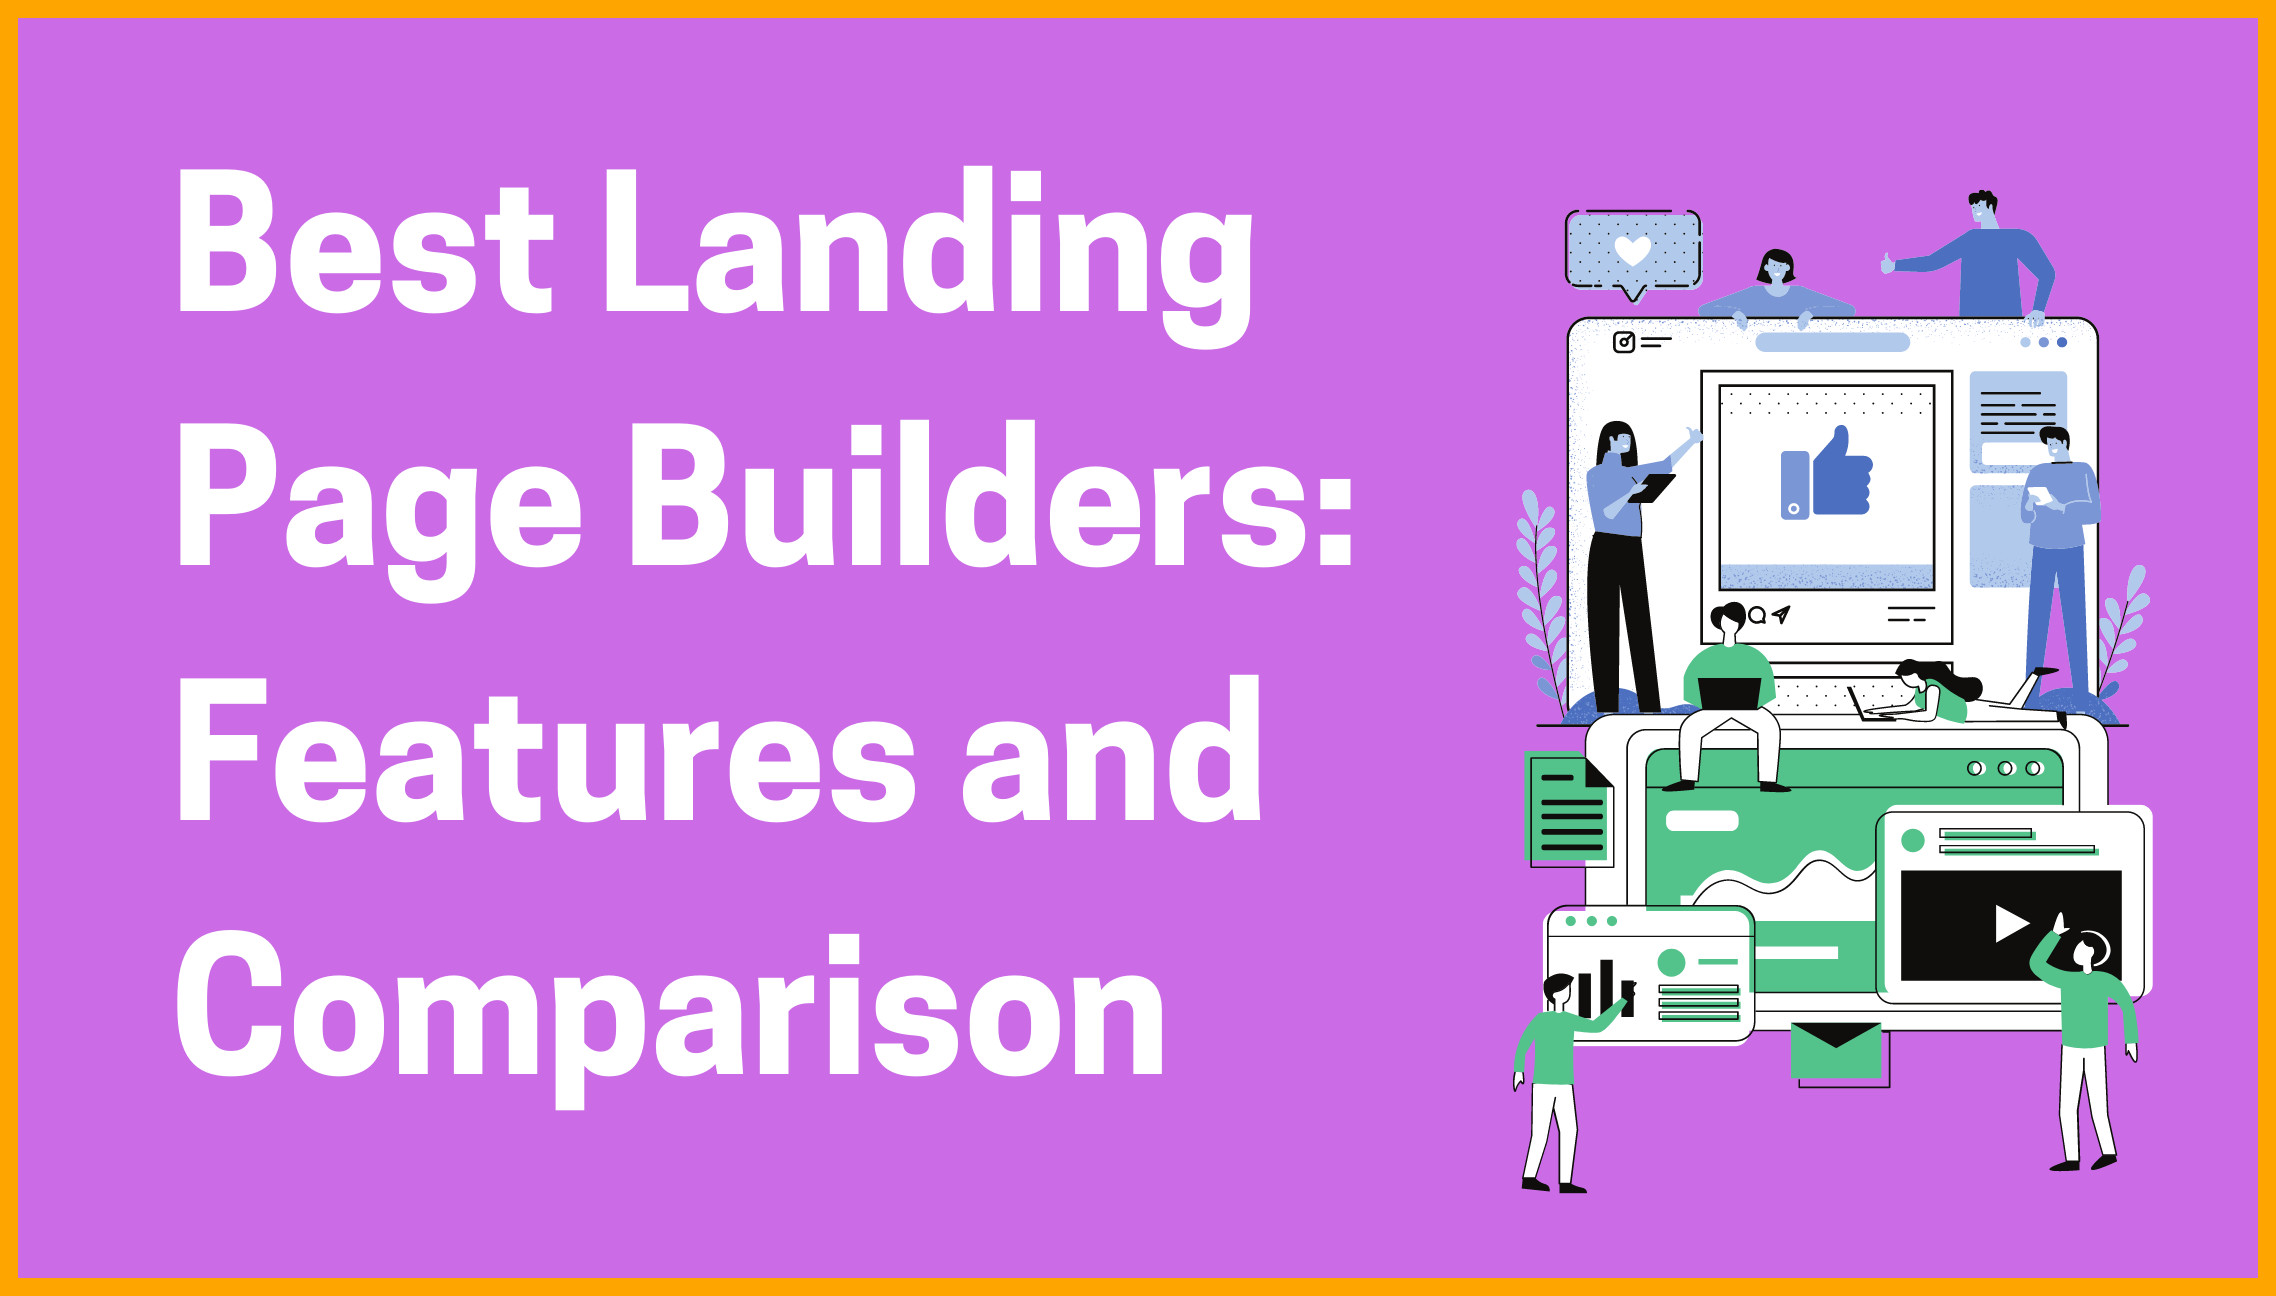 Best Landing Page Builders: Comparison and Features